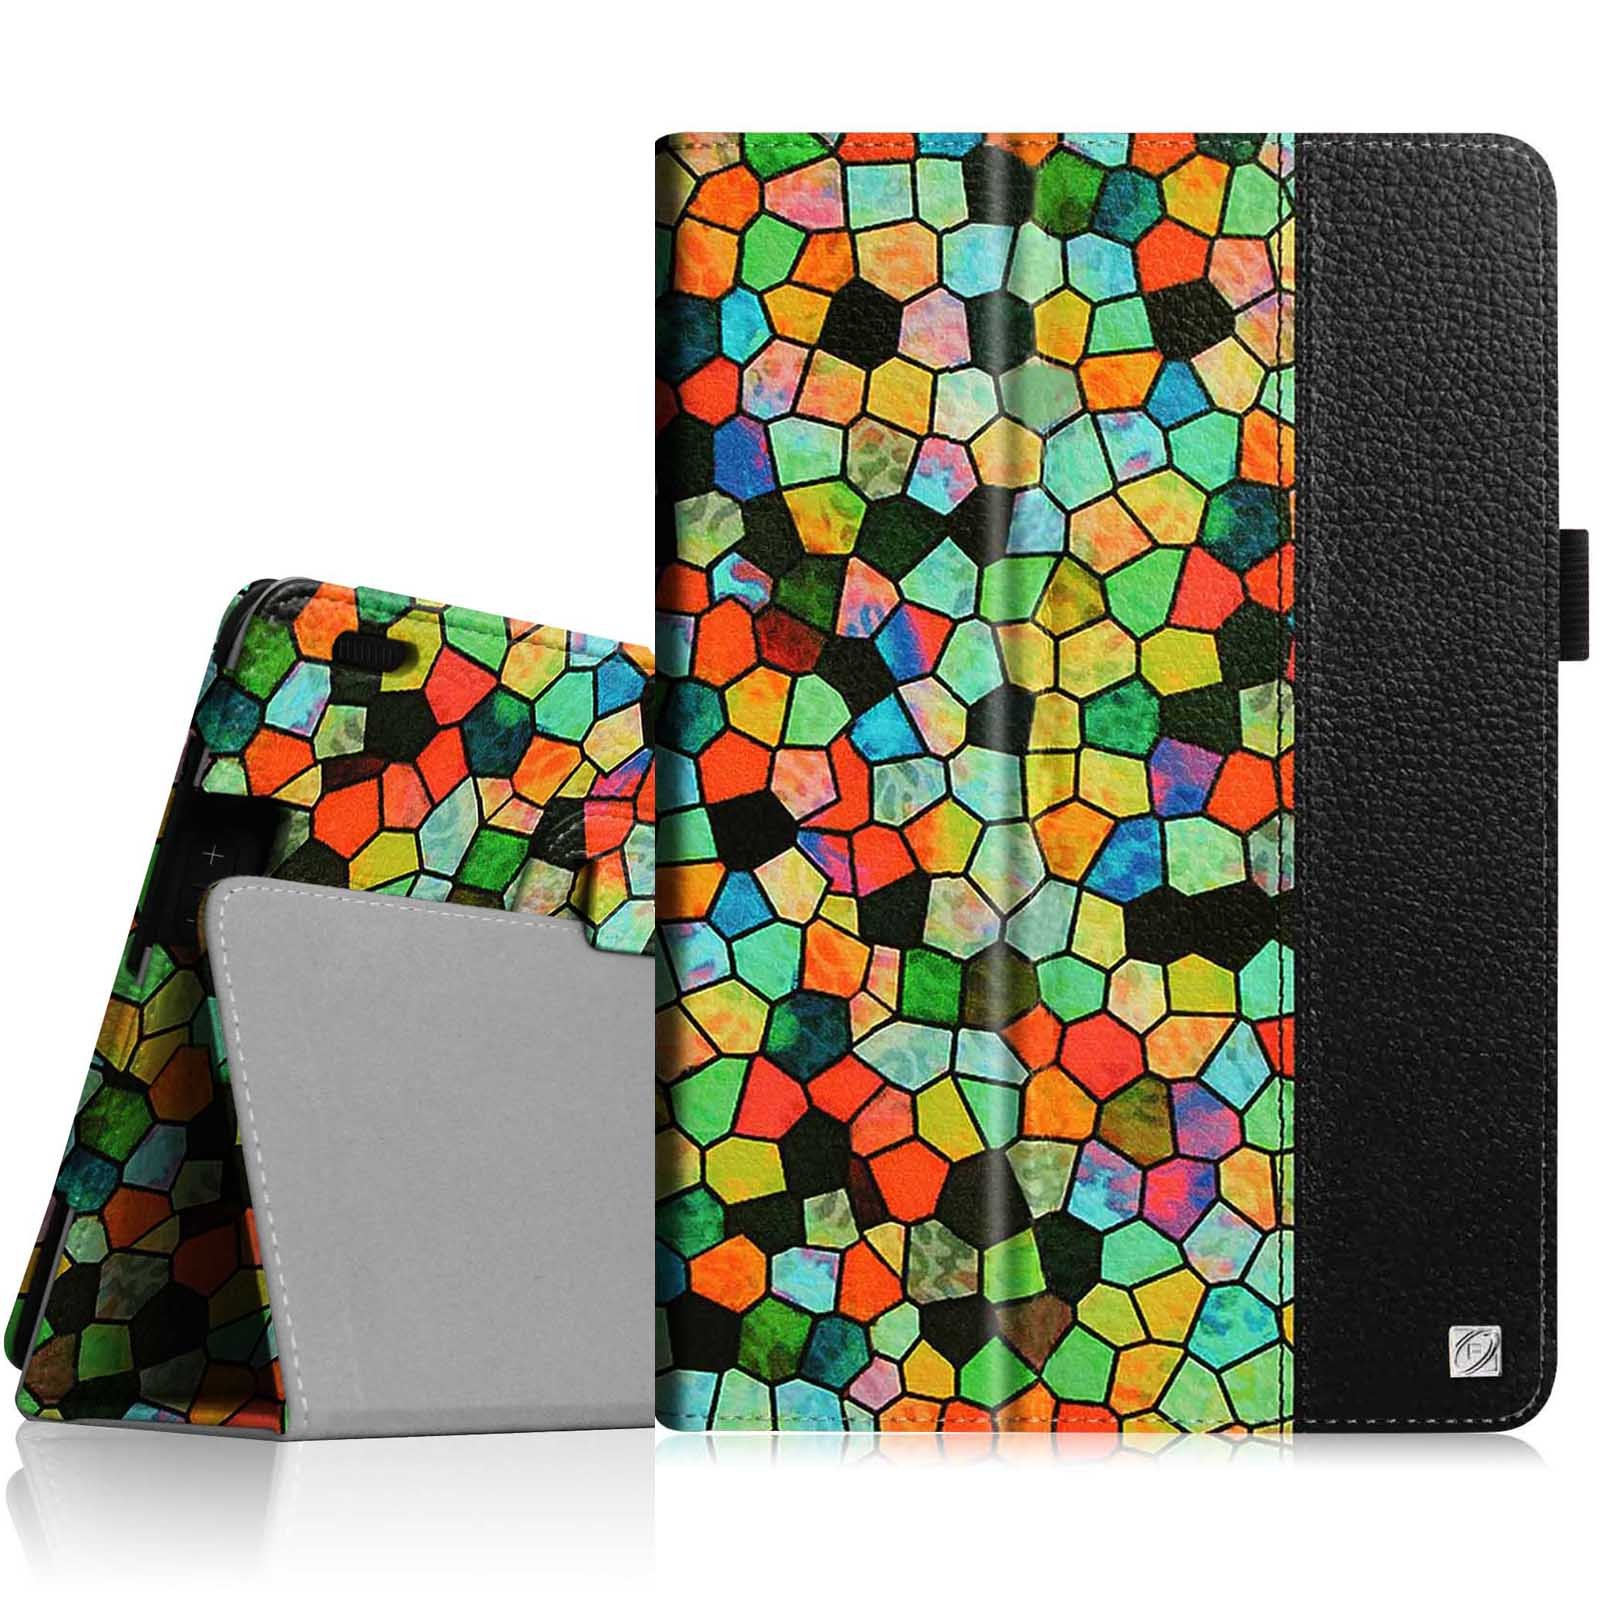 Cheap 3rd Generation Kindle Fire, find 3rd Generation Kindle